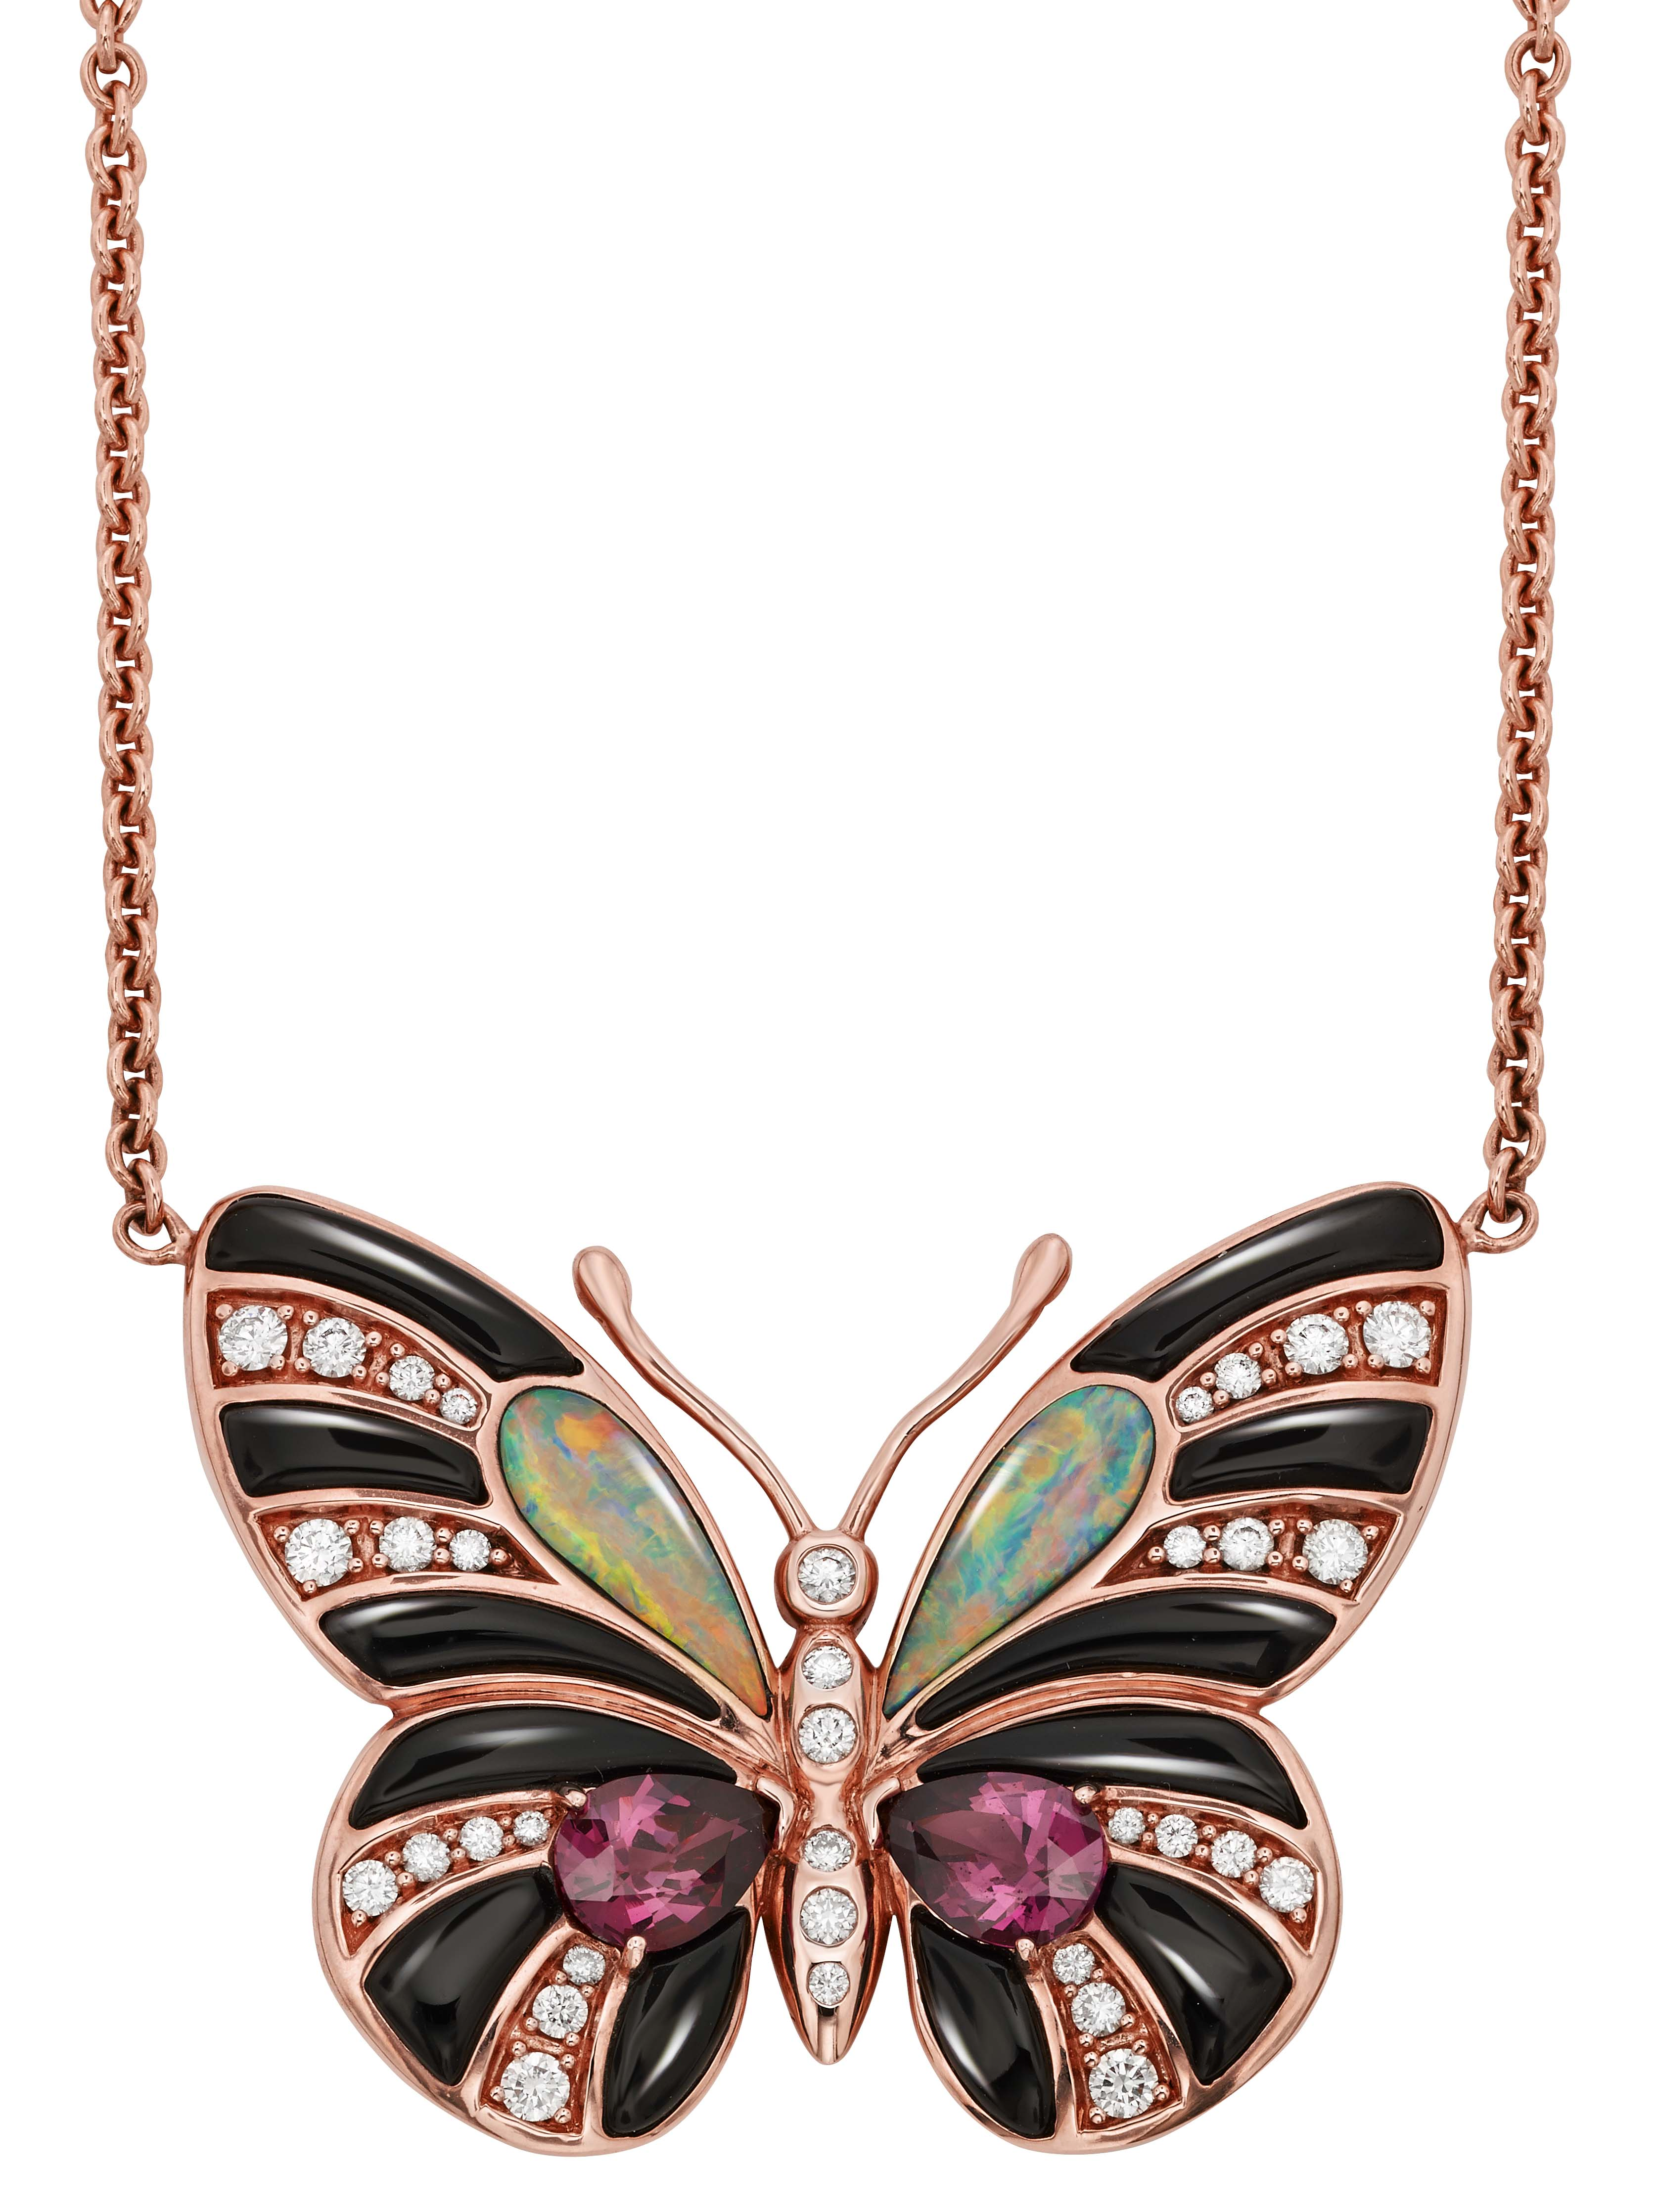 Kabana Eden collection butterfly pendant | JCK On Your Market